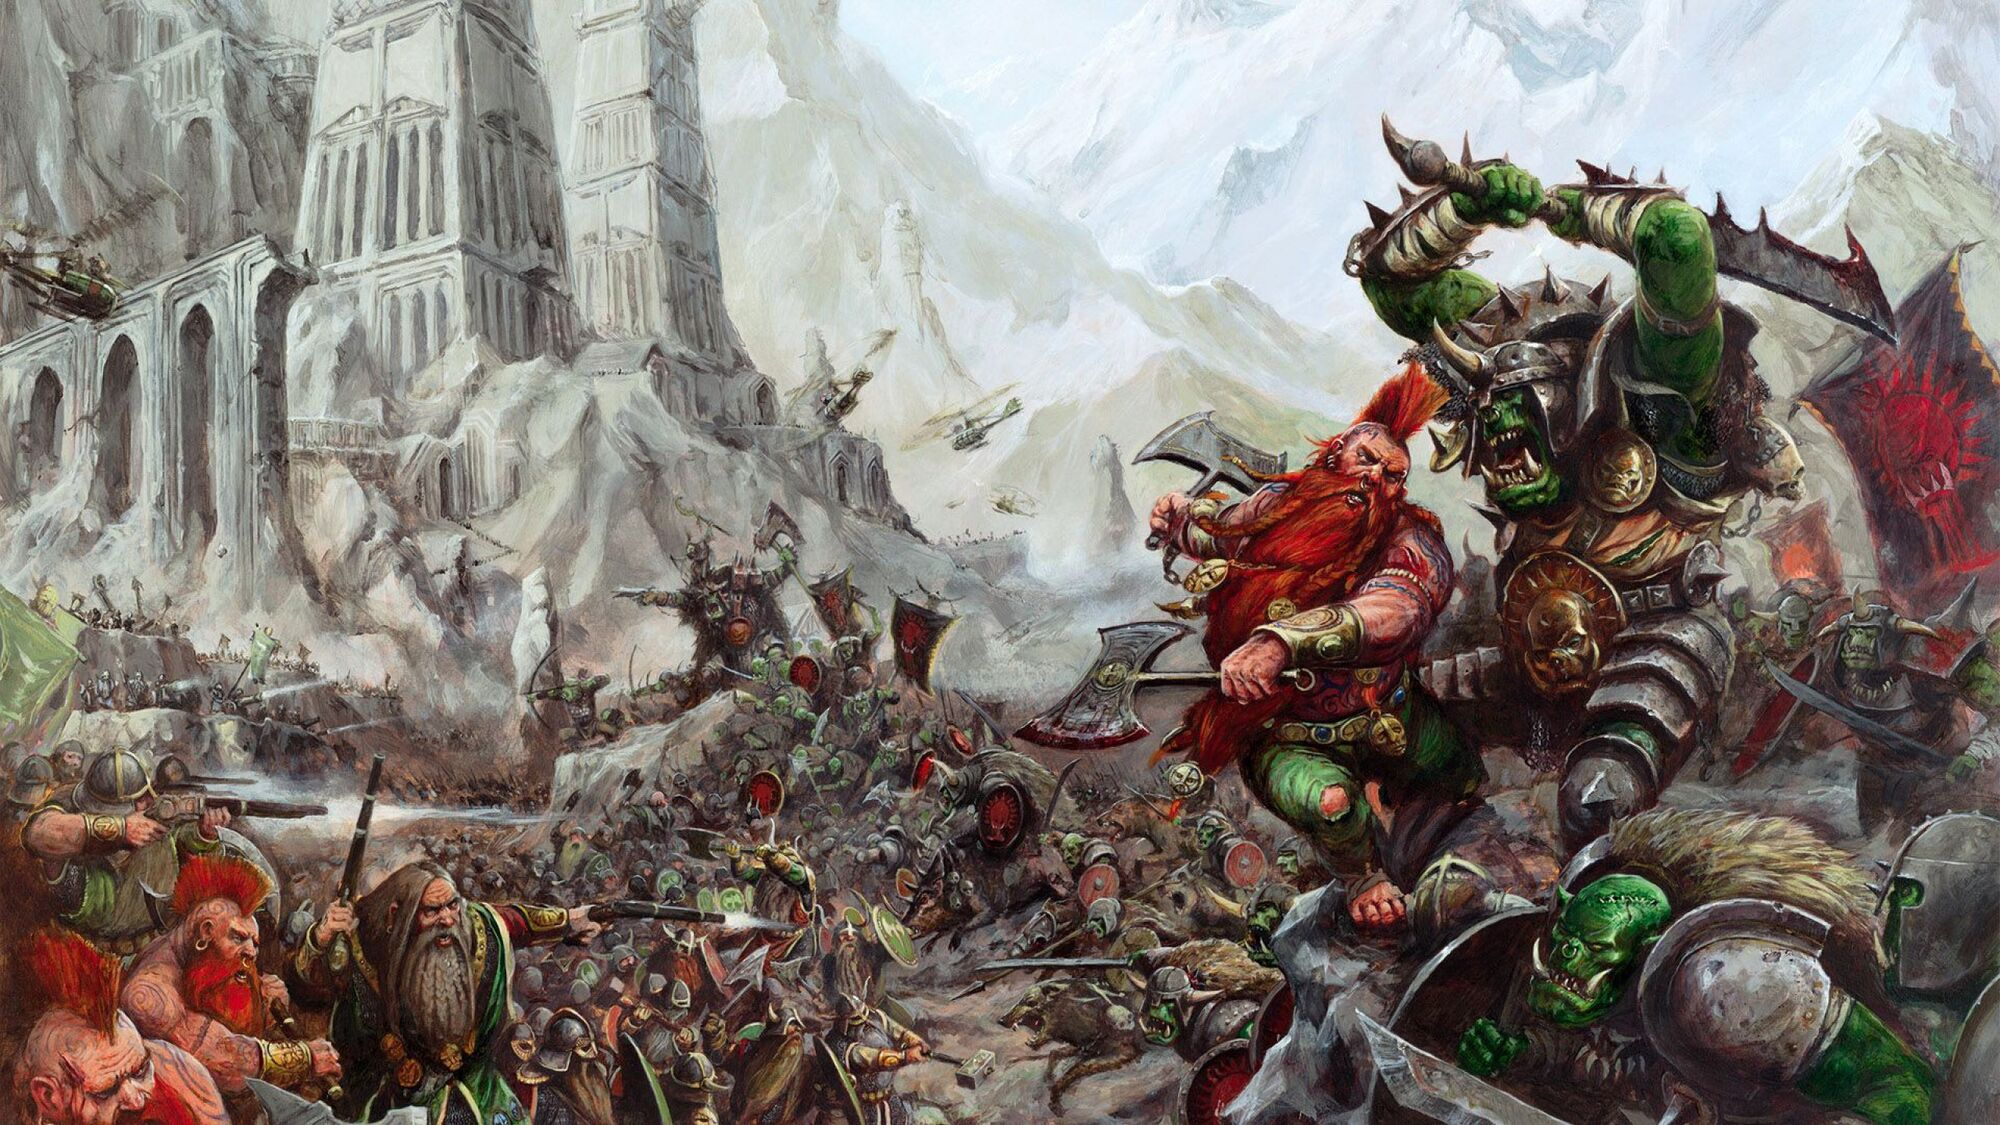 Warhammer Total War 2 Wallpaper 2560 X 1440 Dark Elves: Image - Orcs-VS-Dwarfs-1440x2560.jpg